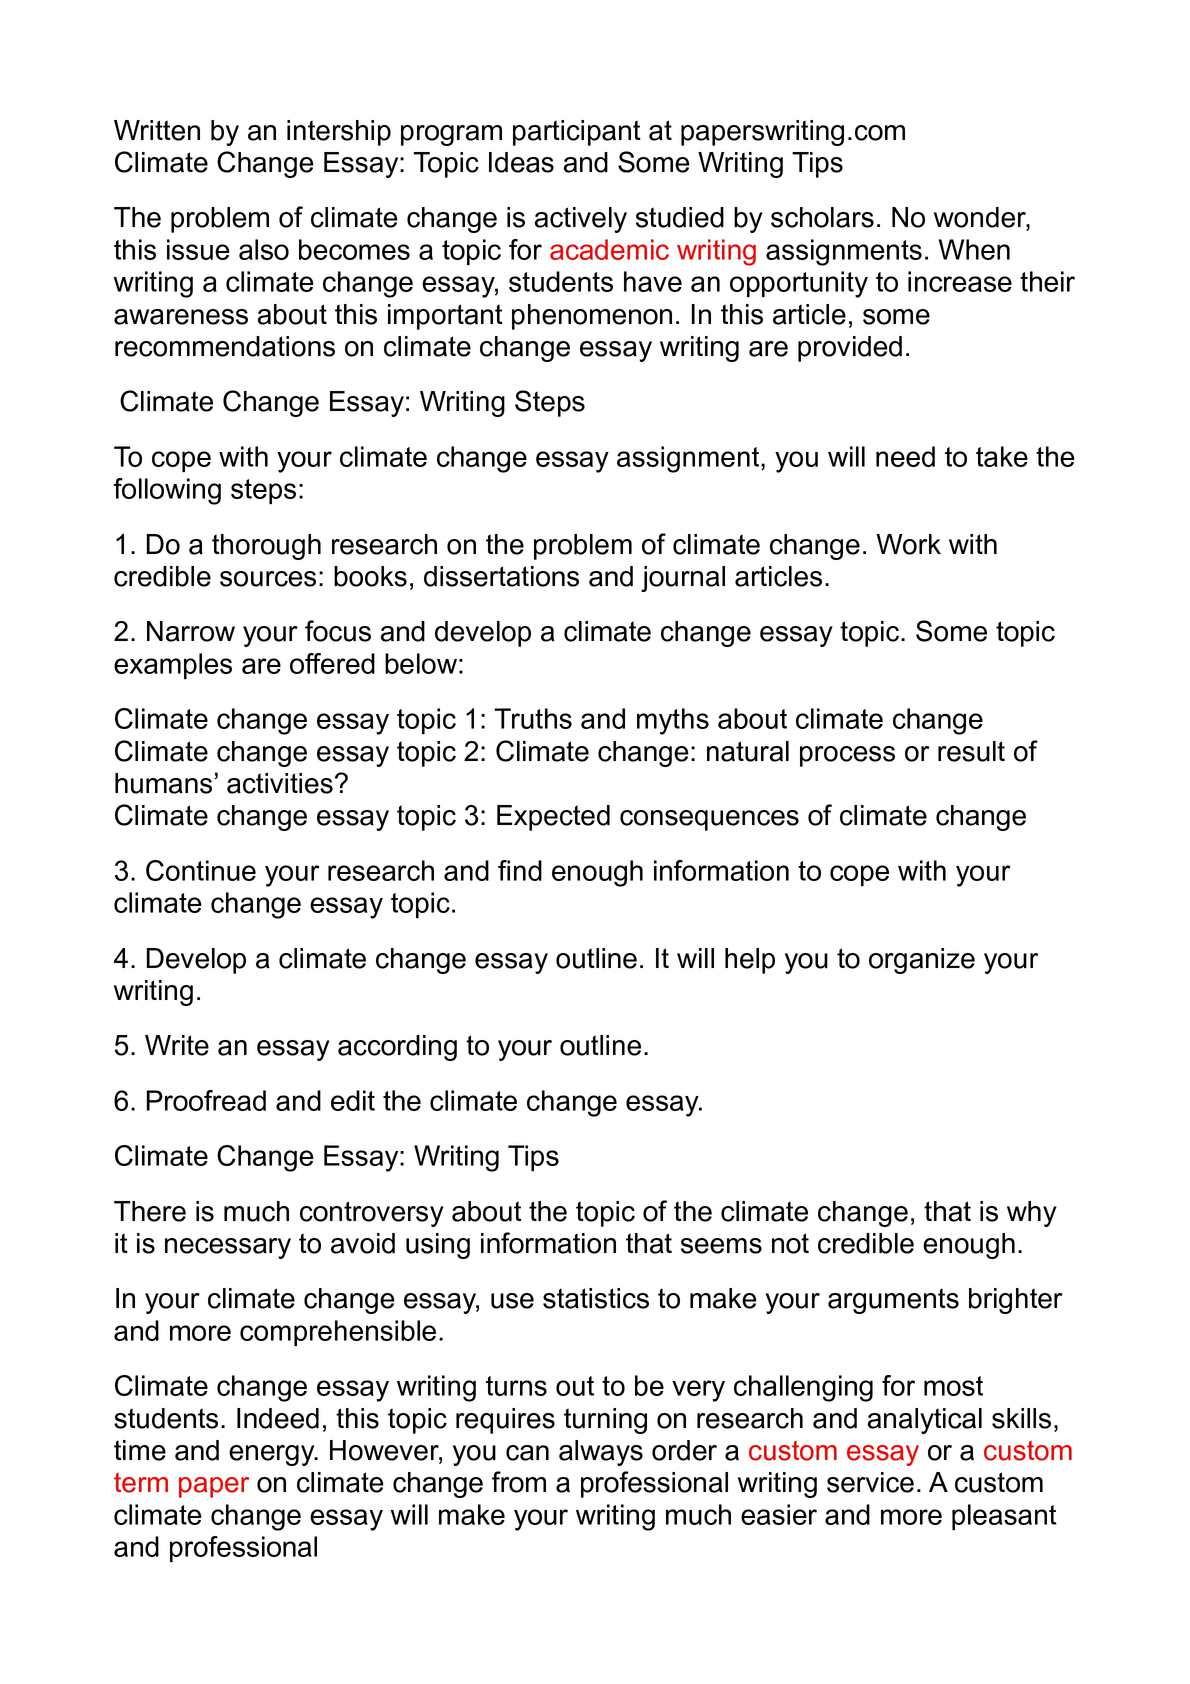 002 Research Paper Climate Change Topics Essay Uncategorized Global Warming Topic Ways To St Oracleboss Awesome Full